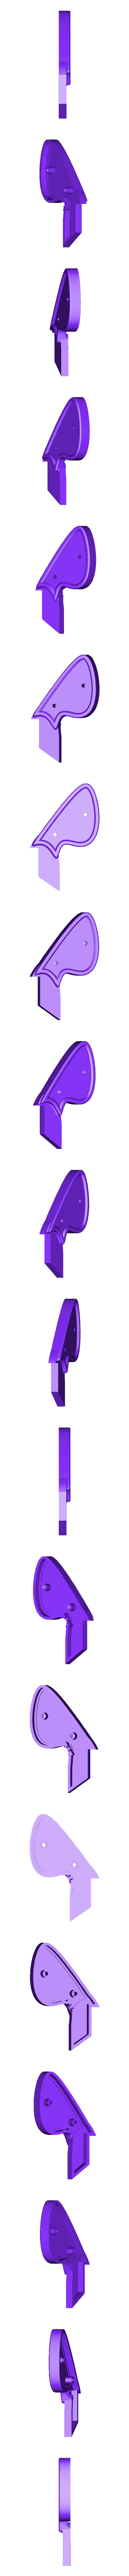 Hollow_handle_2.stl Download free STL file Raygun • 3D print template, cmoore1